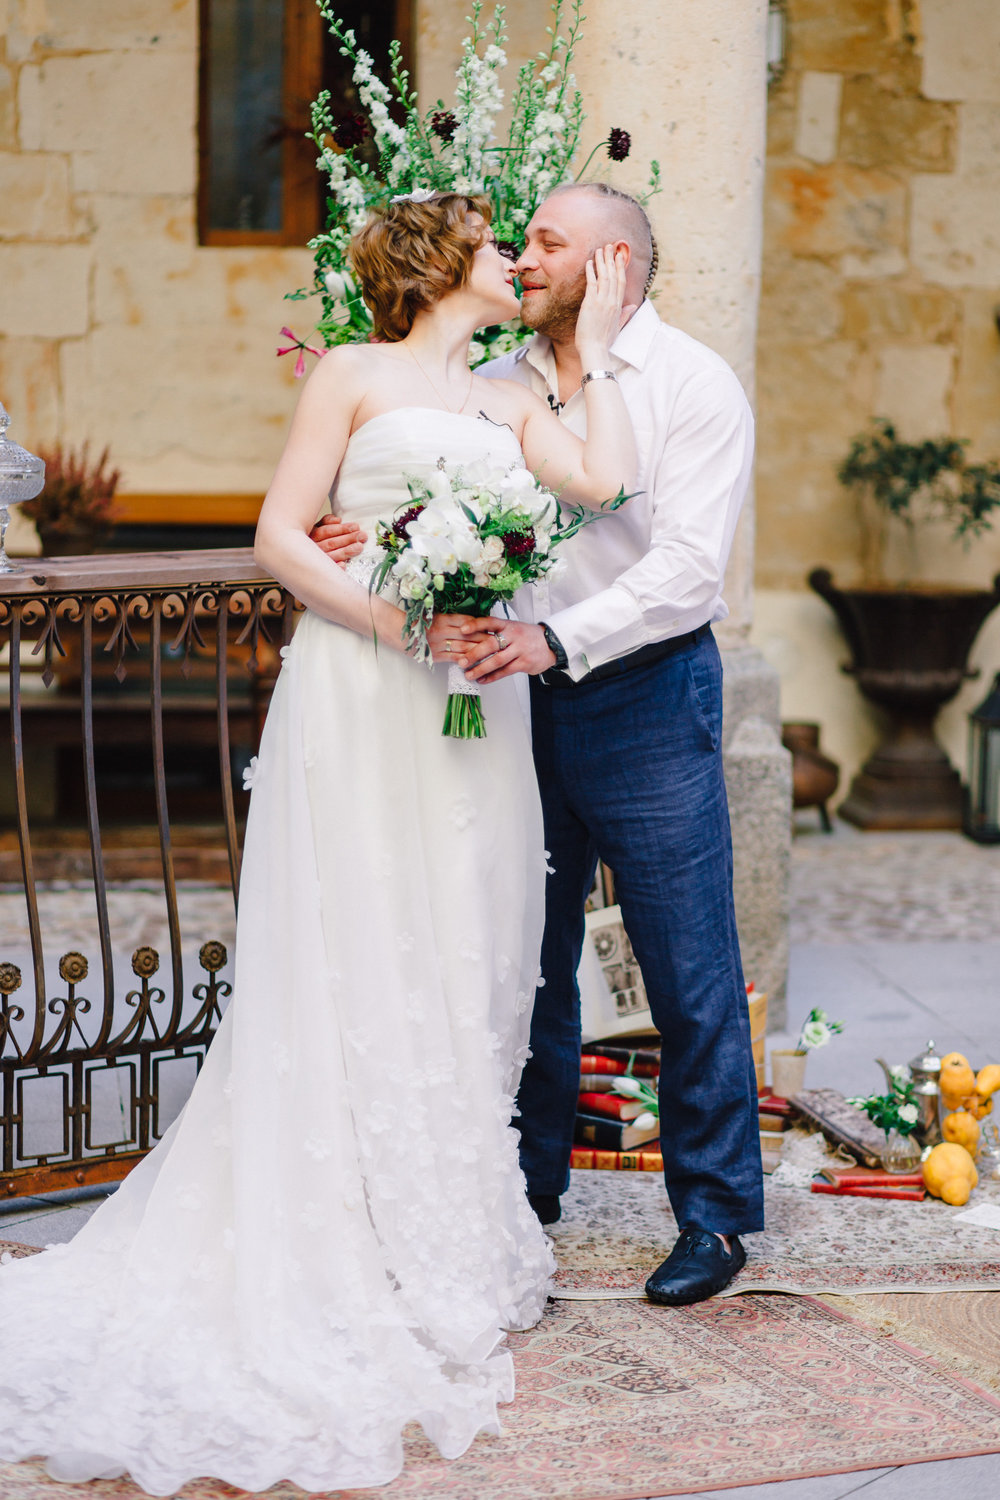 Spain Castle Wedding - A Castillo del Buen Amor Castle Wedding in Salamanca, Spain -- Wedding Blog-The Overwhelmed Bride